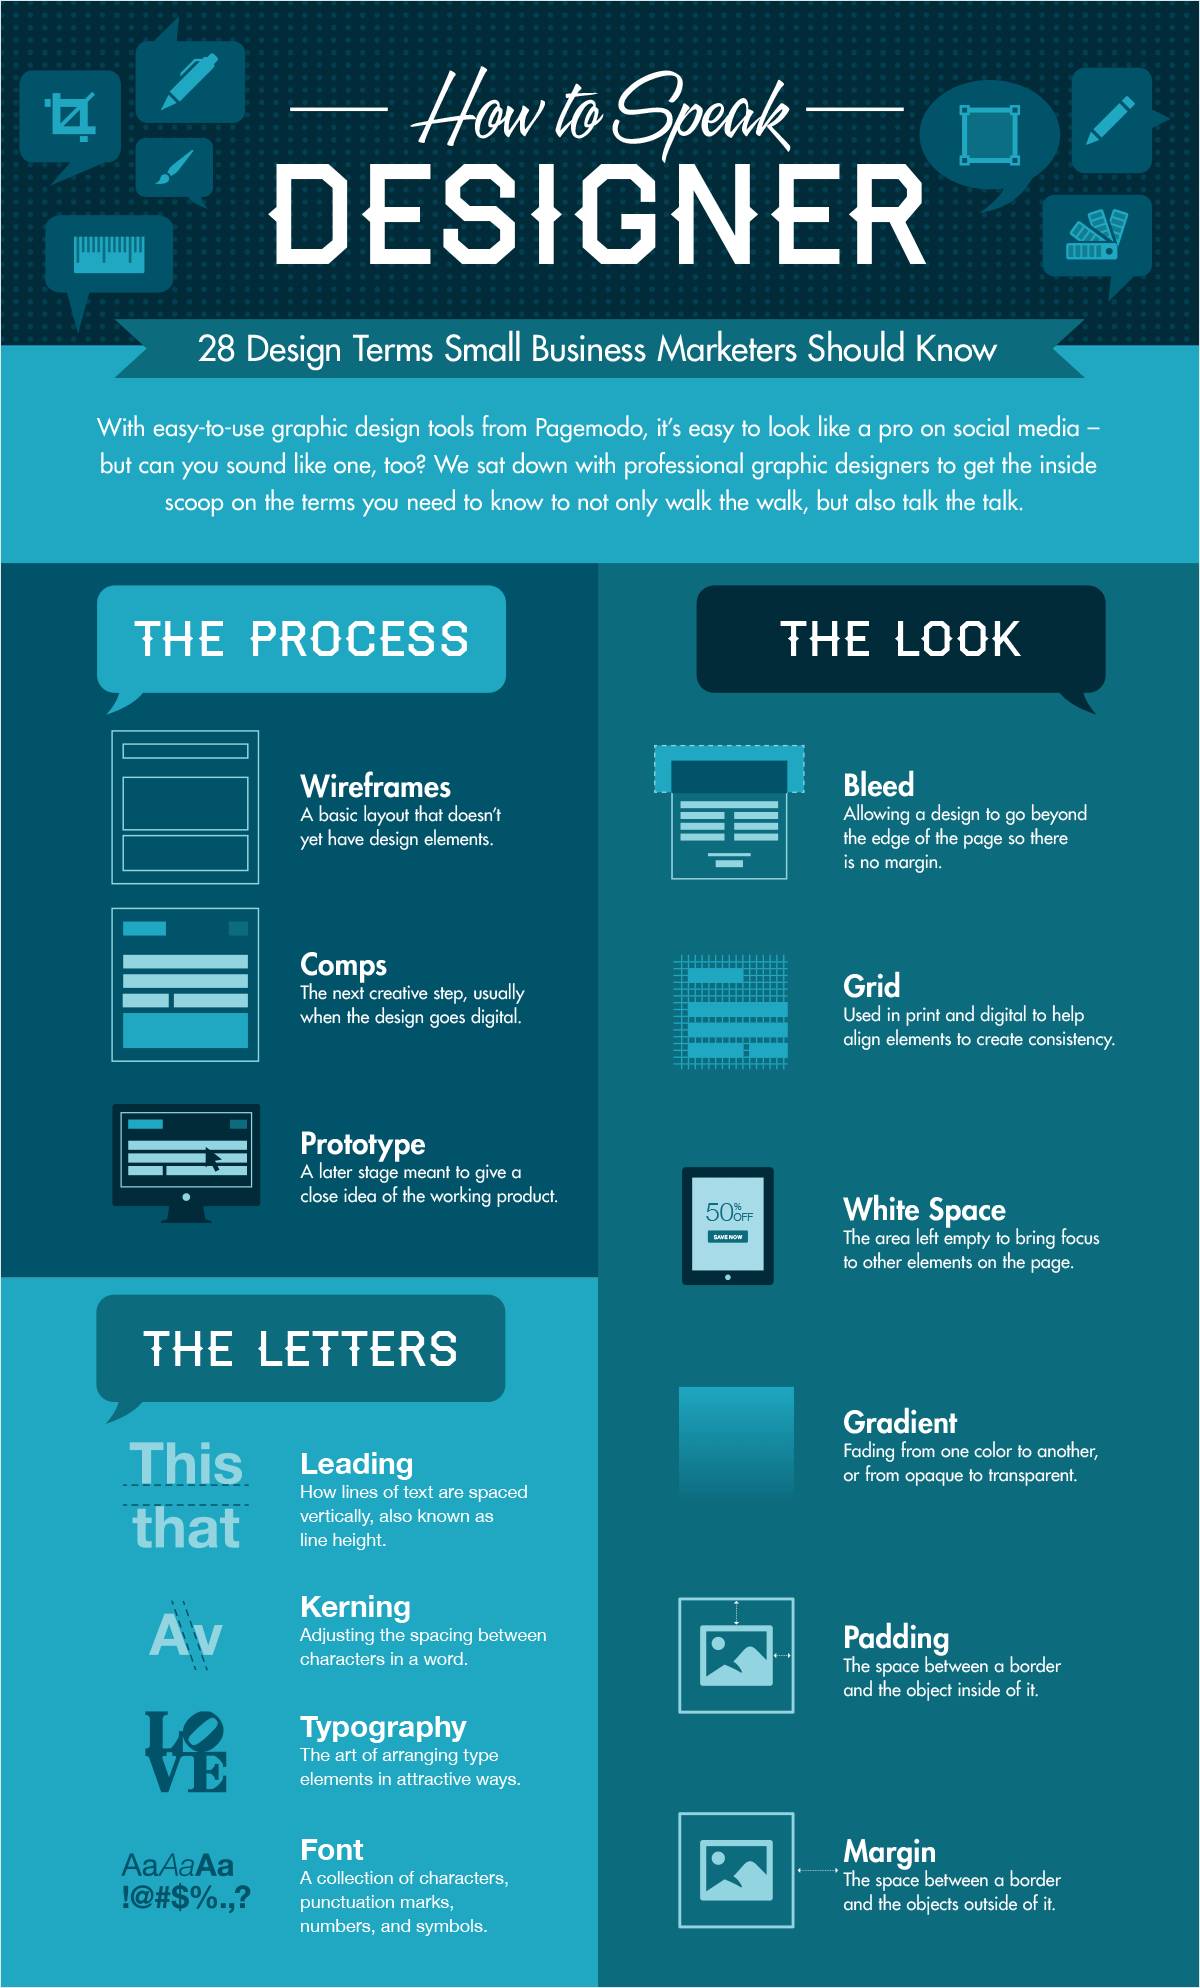 101 Infographic Examples on 19 Different Subjects | Visual Learning ...